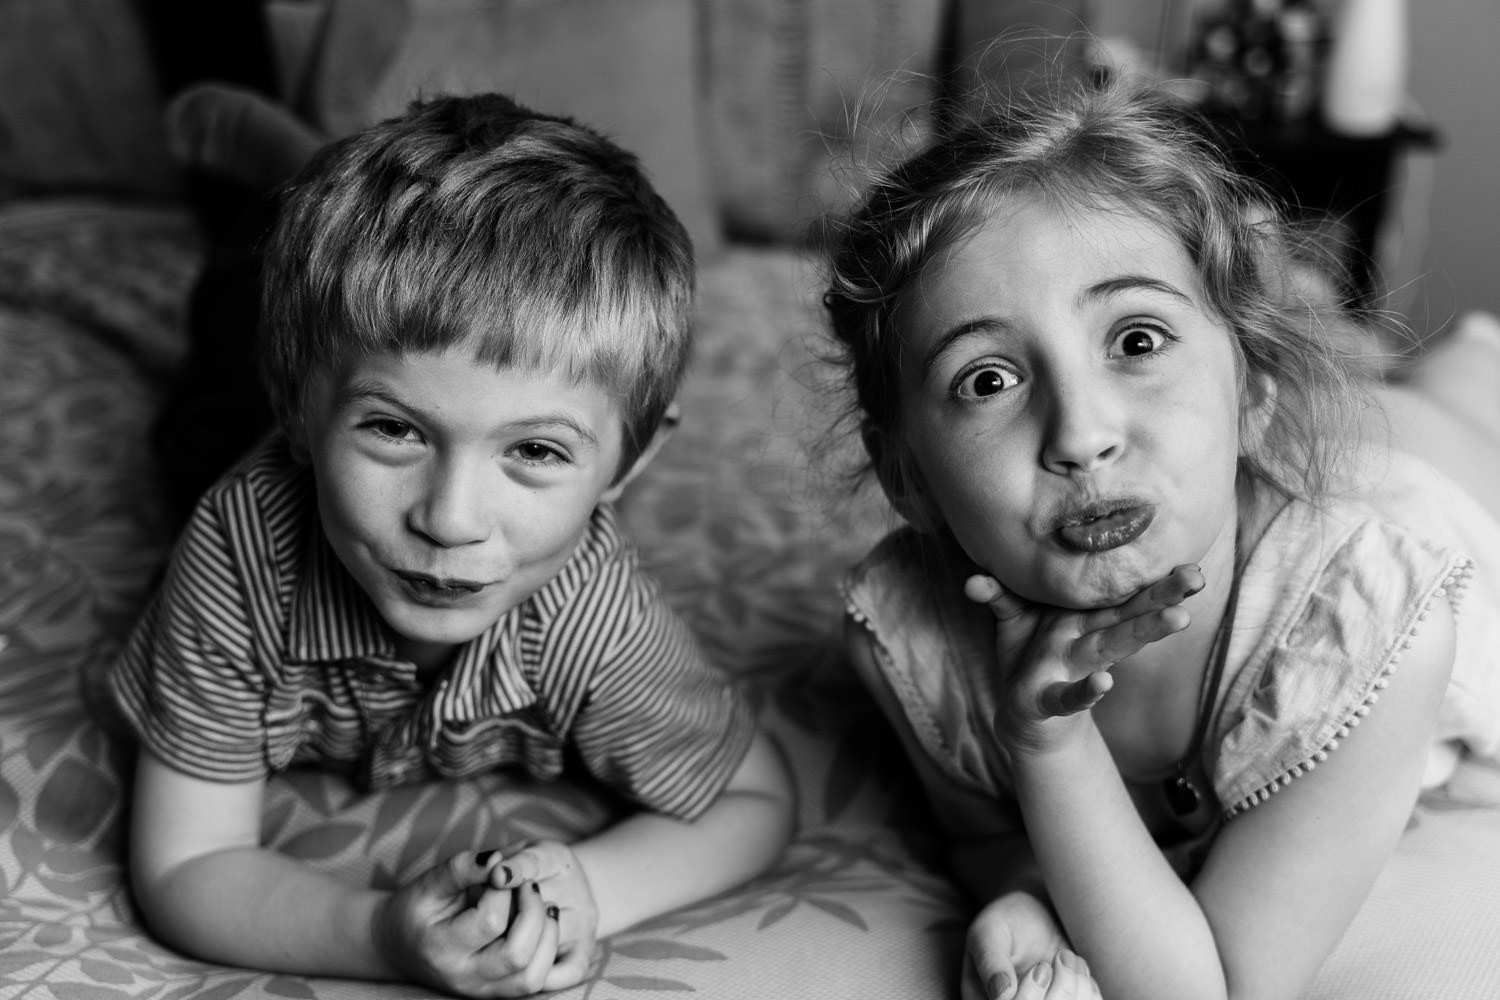 Two children make goofy faces at the camera.